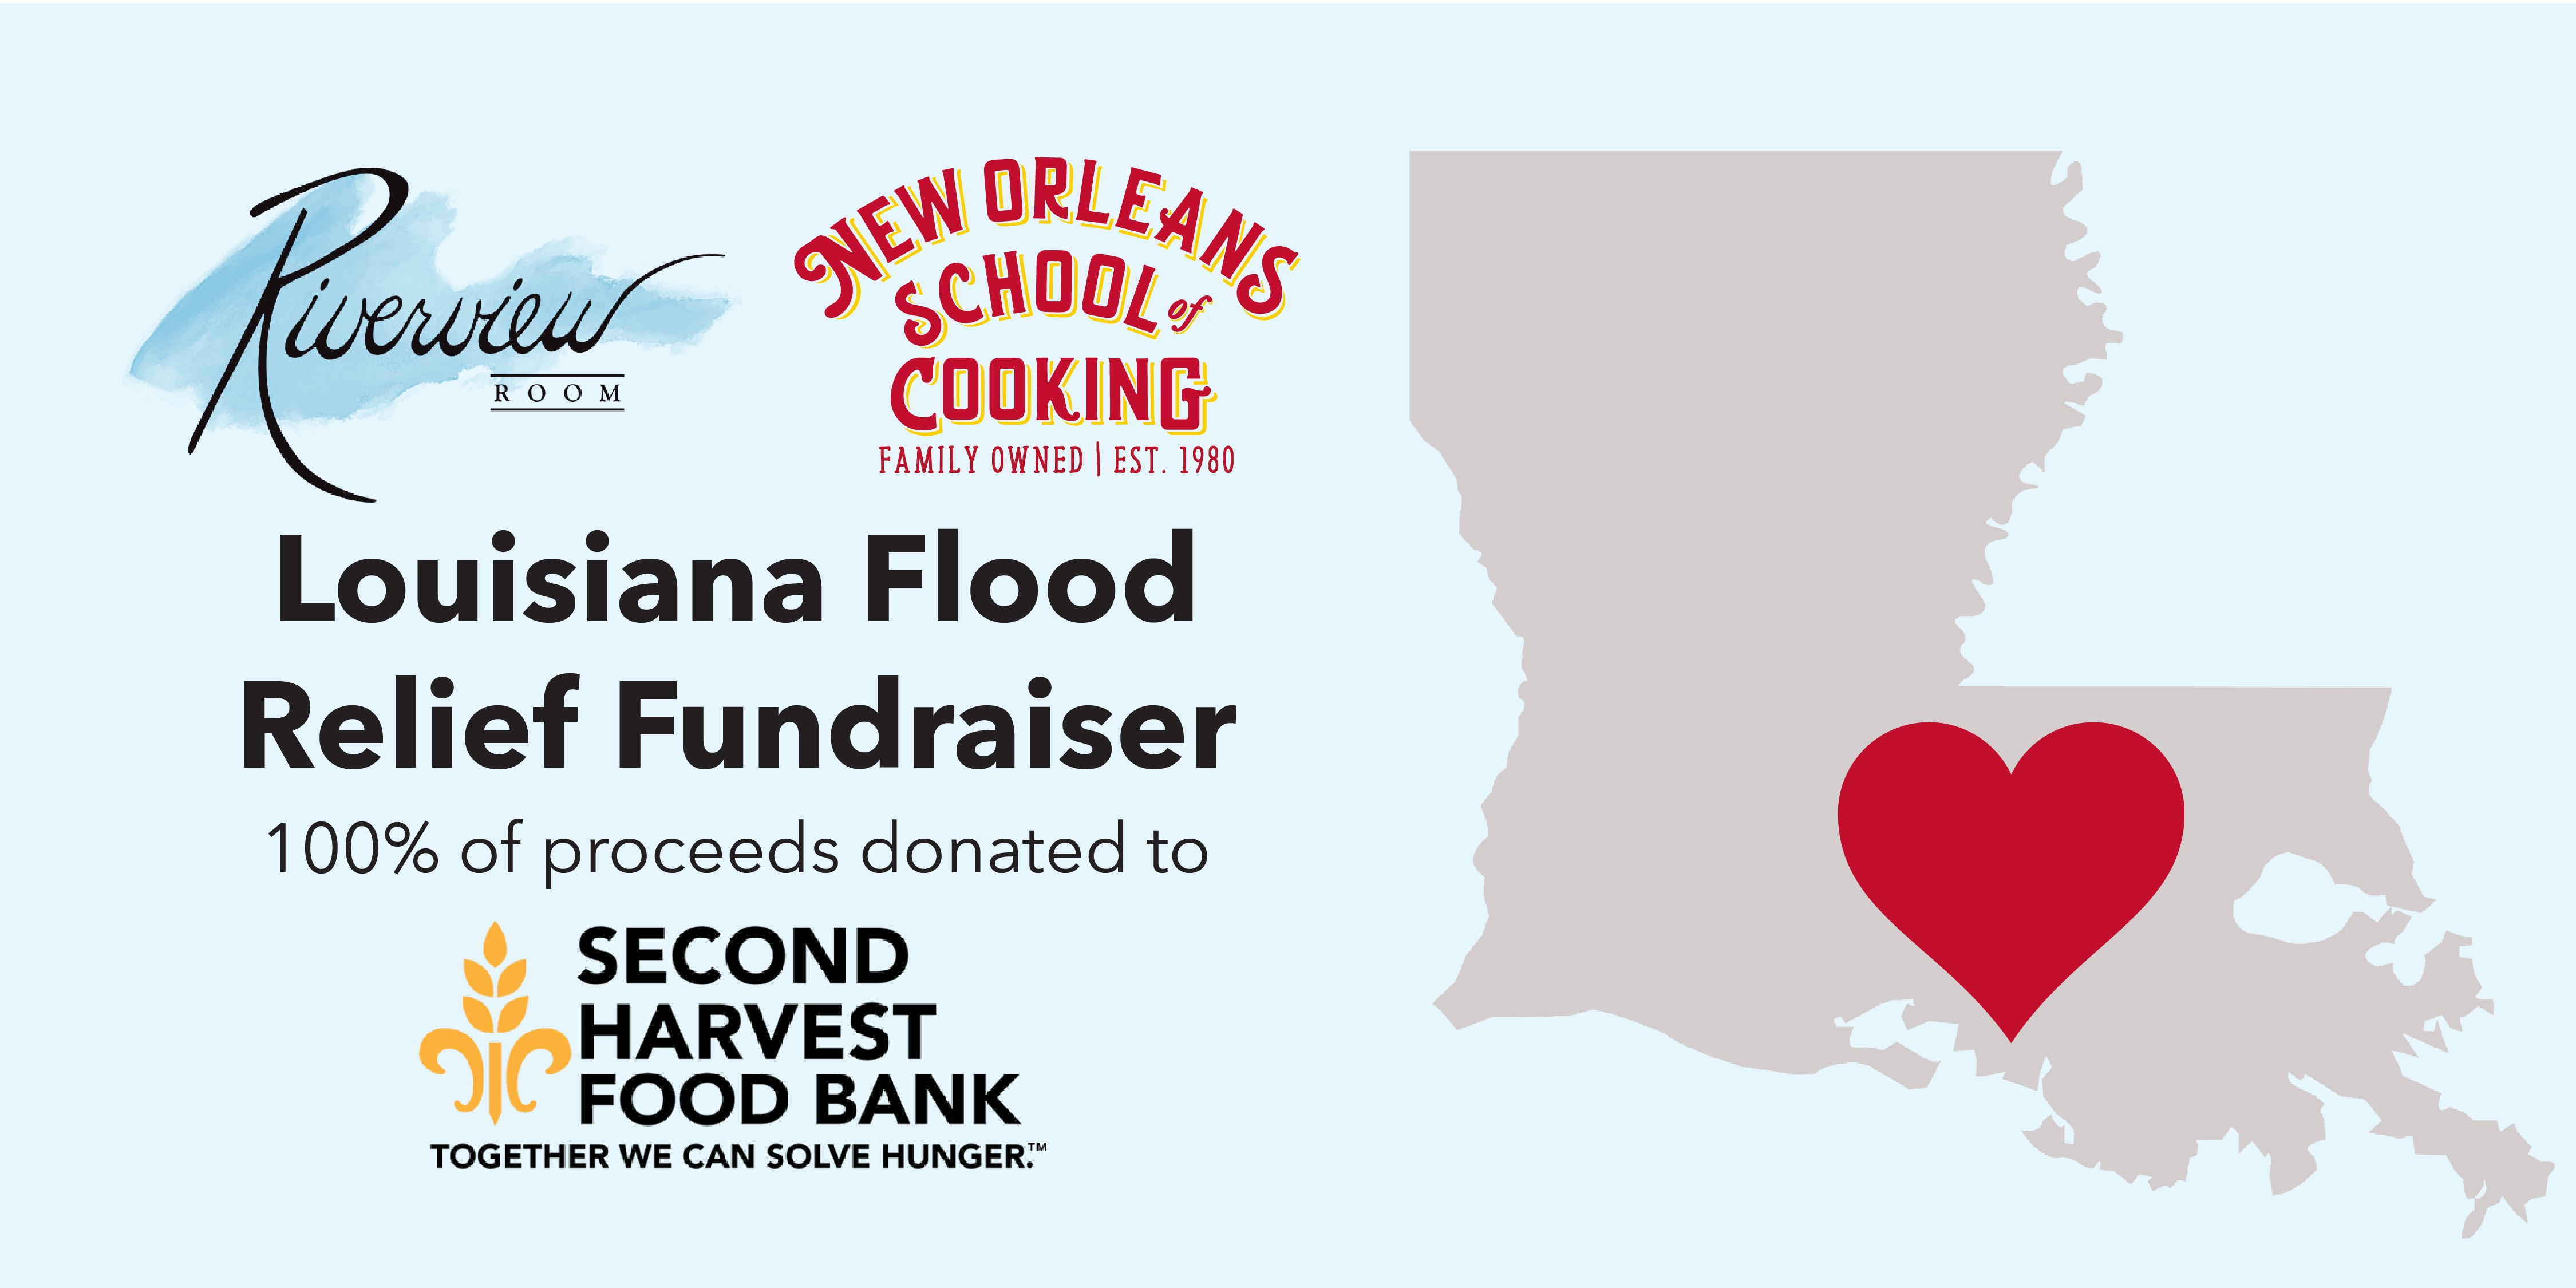 Louisiana Flood Relief Fundraiser